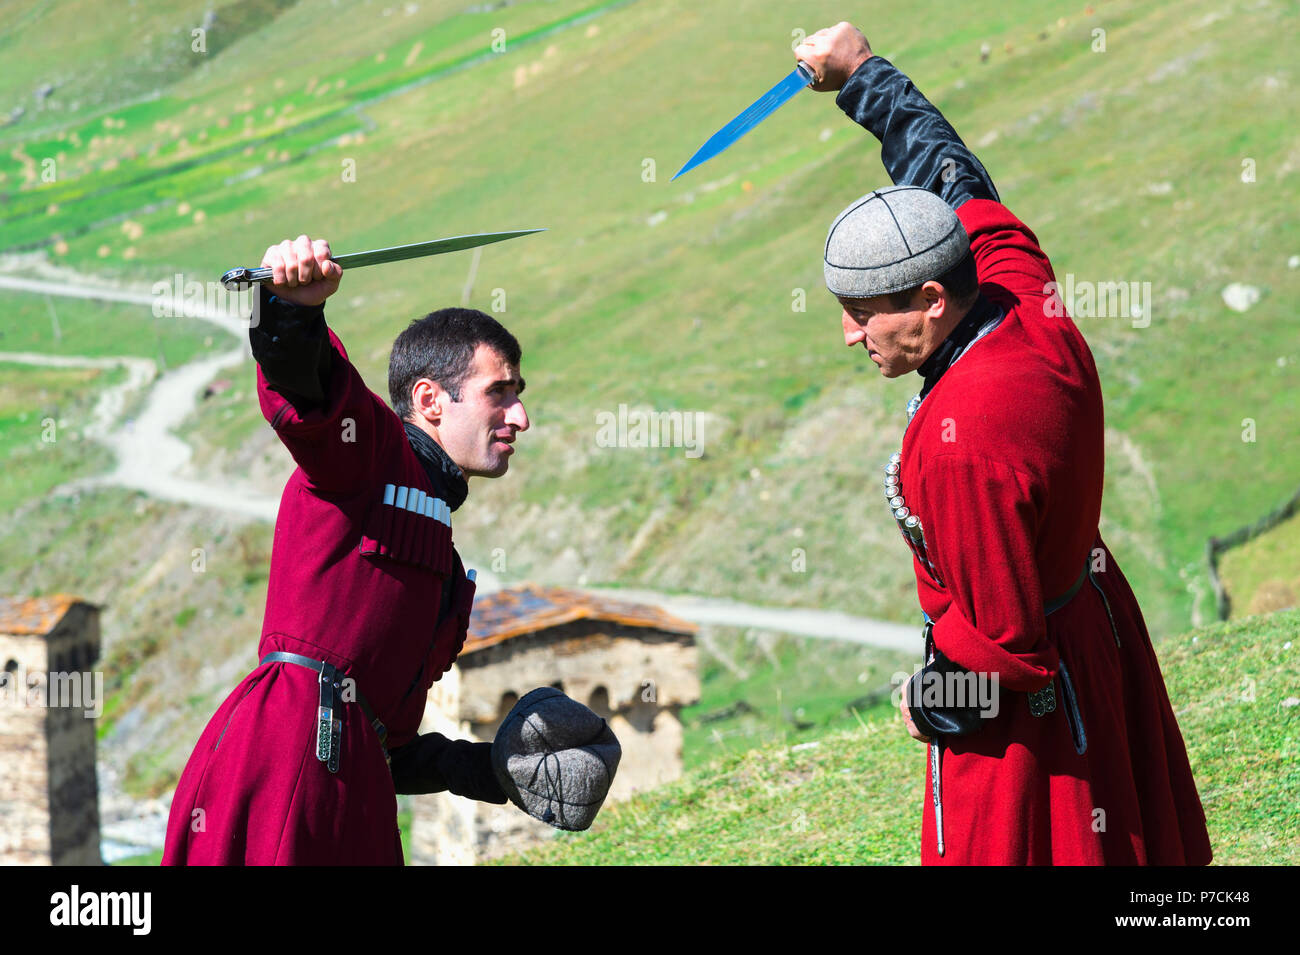 Dagger fighting show by two Georgian men of a folkloric group, Ushguli, Svaneti region, Georgia - Stock Image